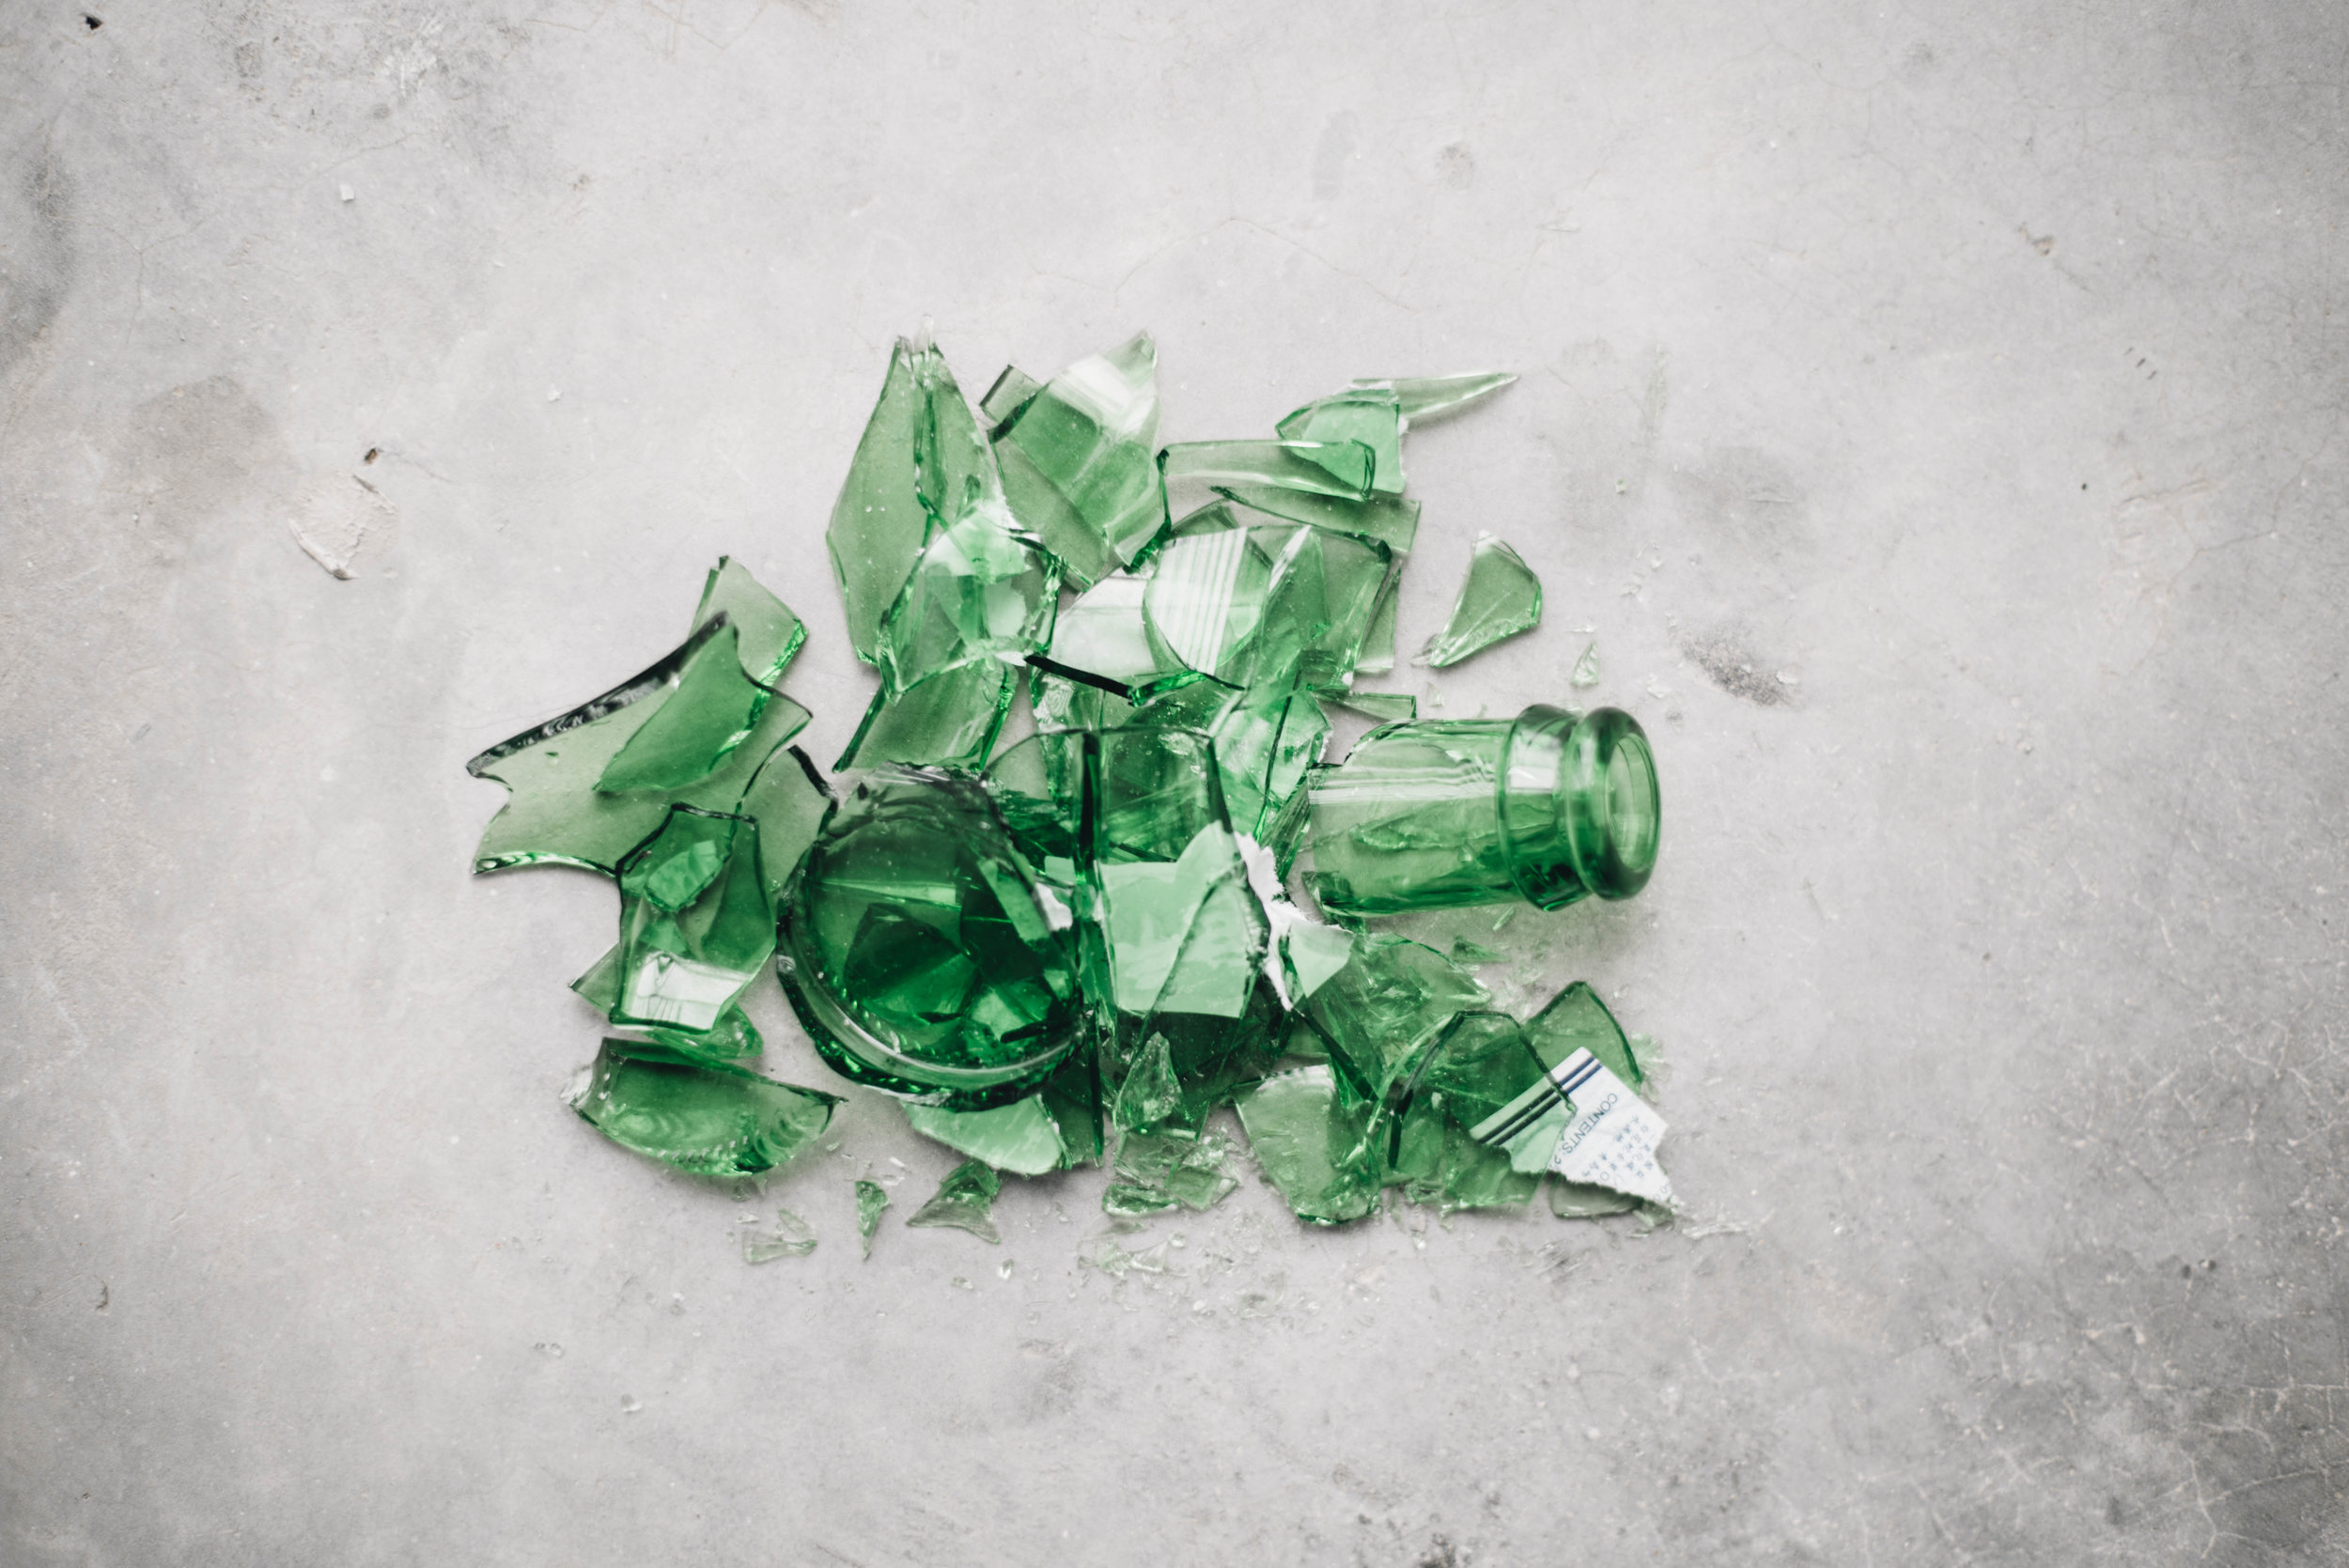 smashed bottle